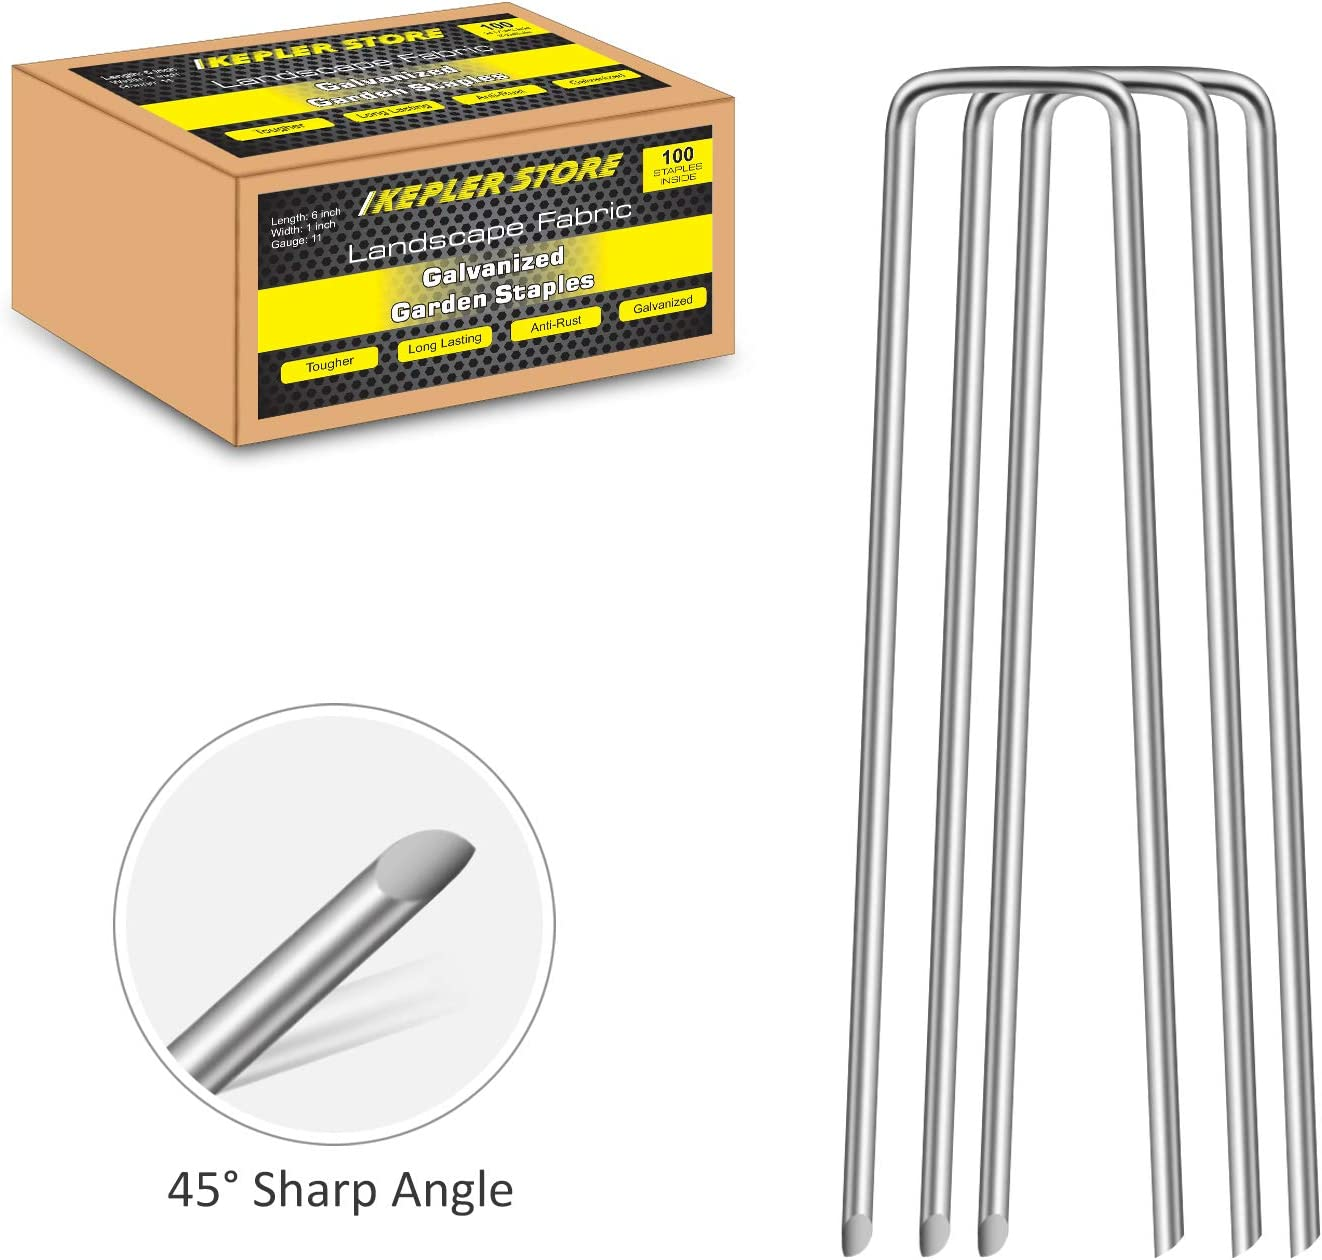 100 Pack 6 Inch Galvanized Landscape Staples 11 Gauge Square Top Garden Stakes for Weed Barrier Fabric Ground Covers, Drip Irrigation Tubing-Heavy Duty Garden Staples